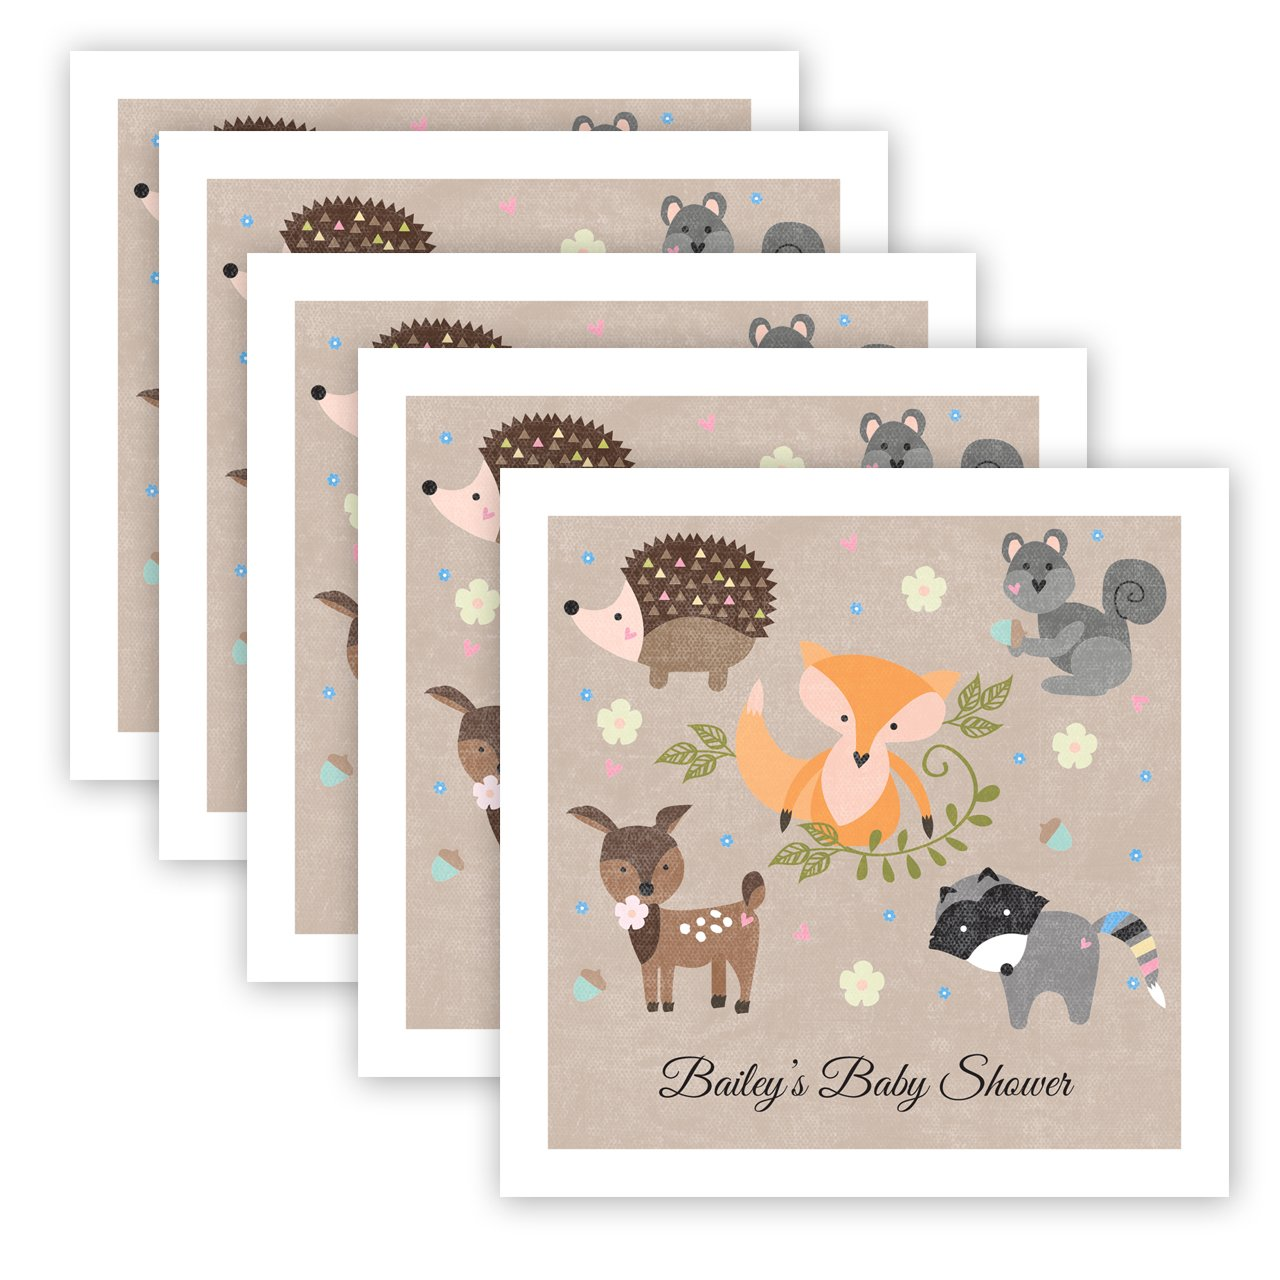 Woodland Animals Personalized Beverage Cocktail Napkins - 100 Custom Printed Paper Napkins by Canopy Street (Image #2)